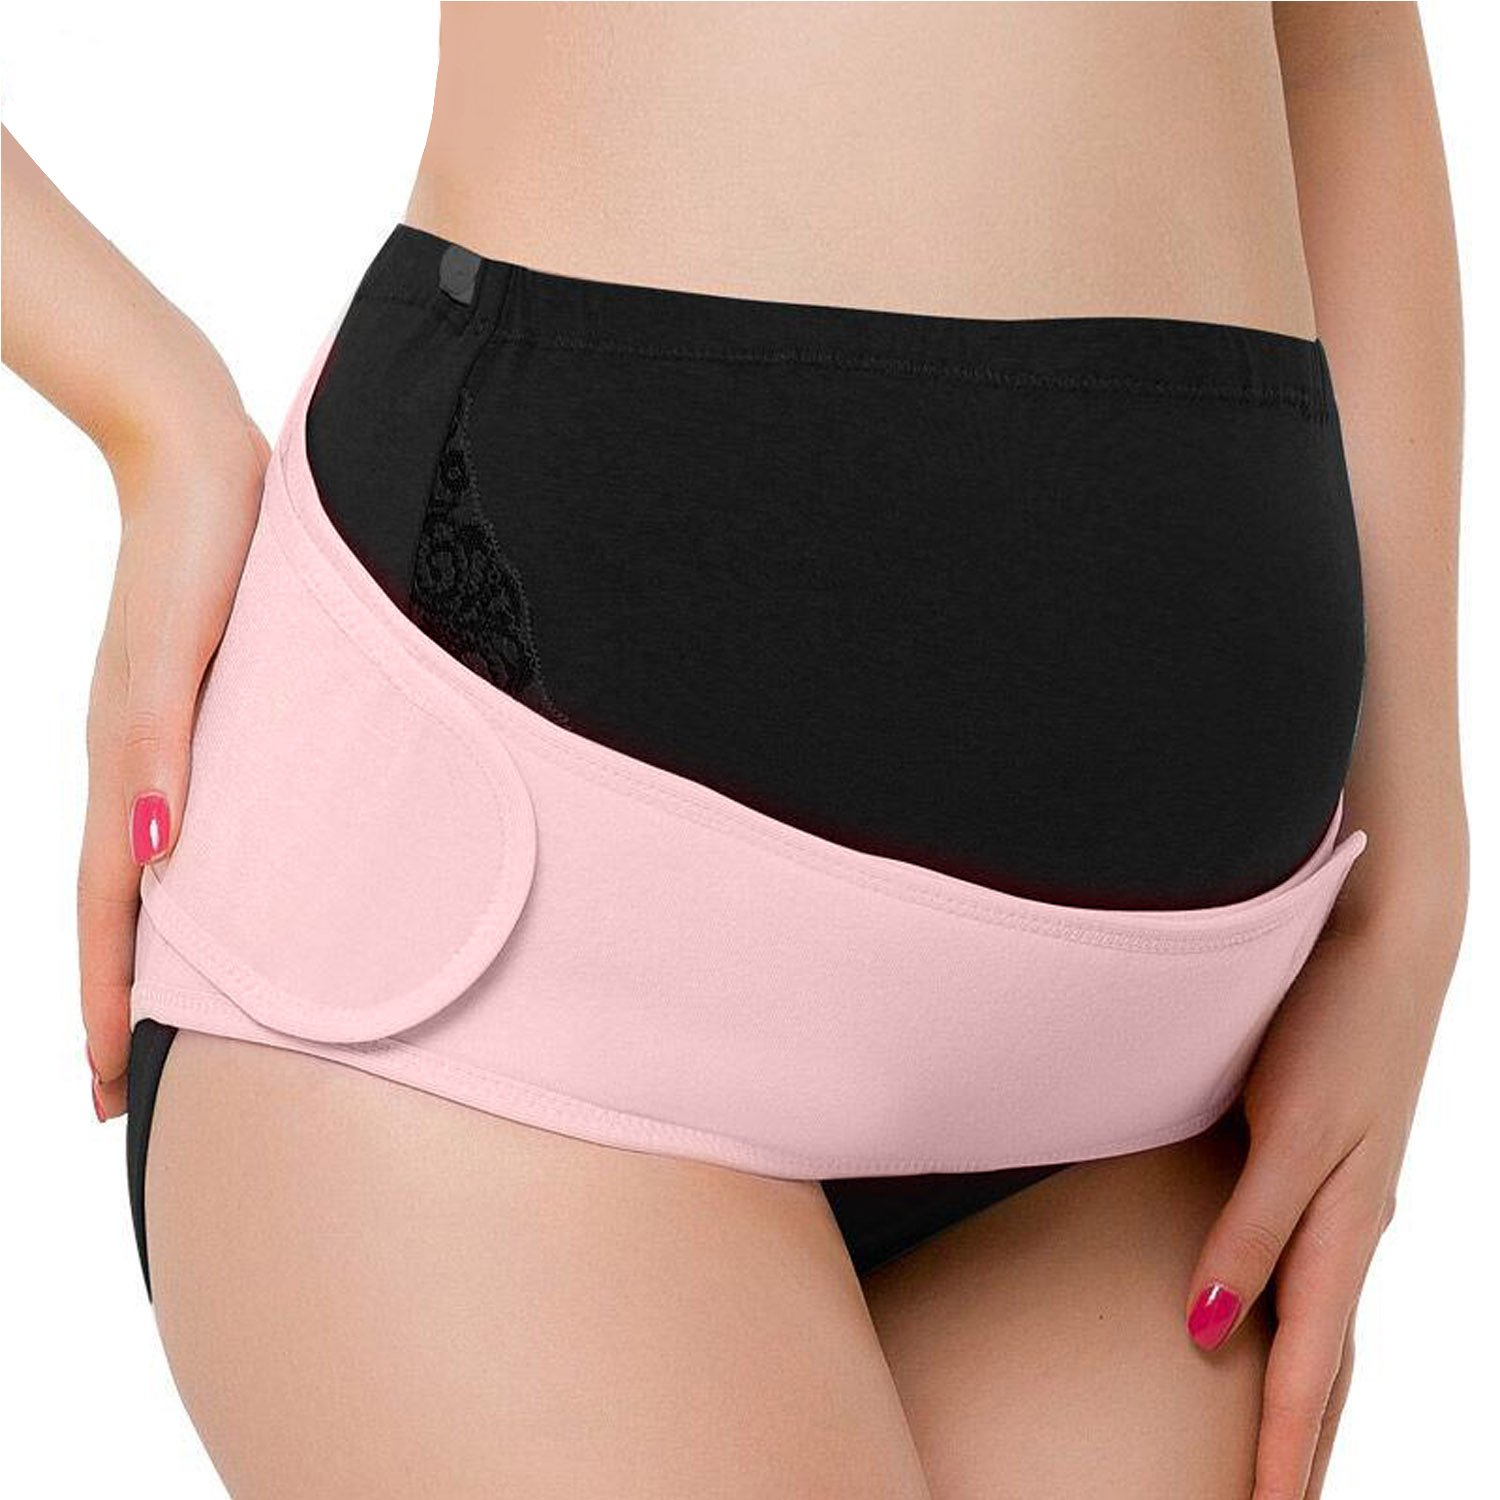 Tirain Maternity Belt Pregnancy Belly Band Breathable Abdominal Binder Adjustable Back Support Belt, Pelvic Support Belt Pregnancy, Suitable For Prenatal and Postpartum Recovery Pink)